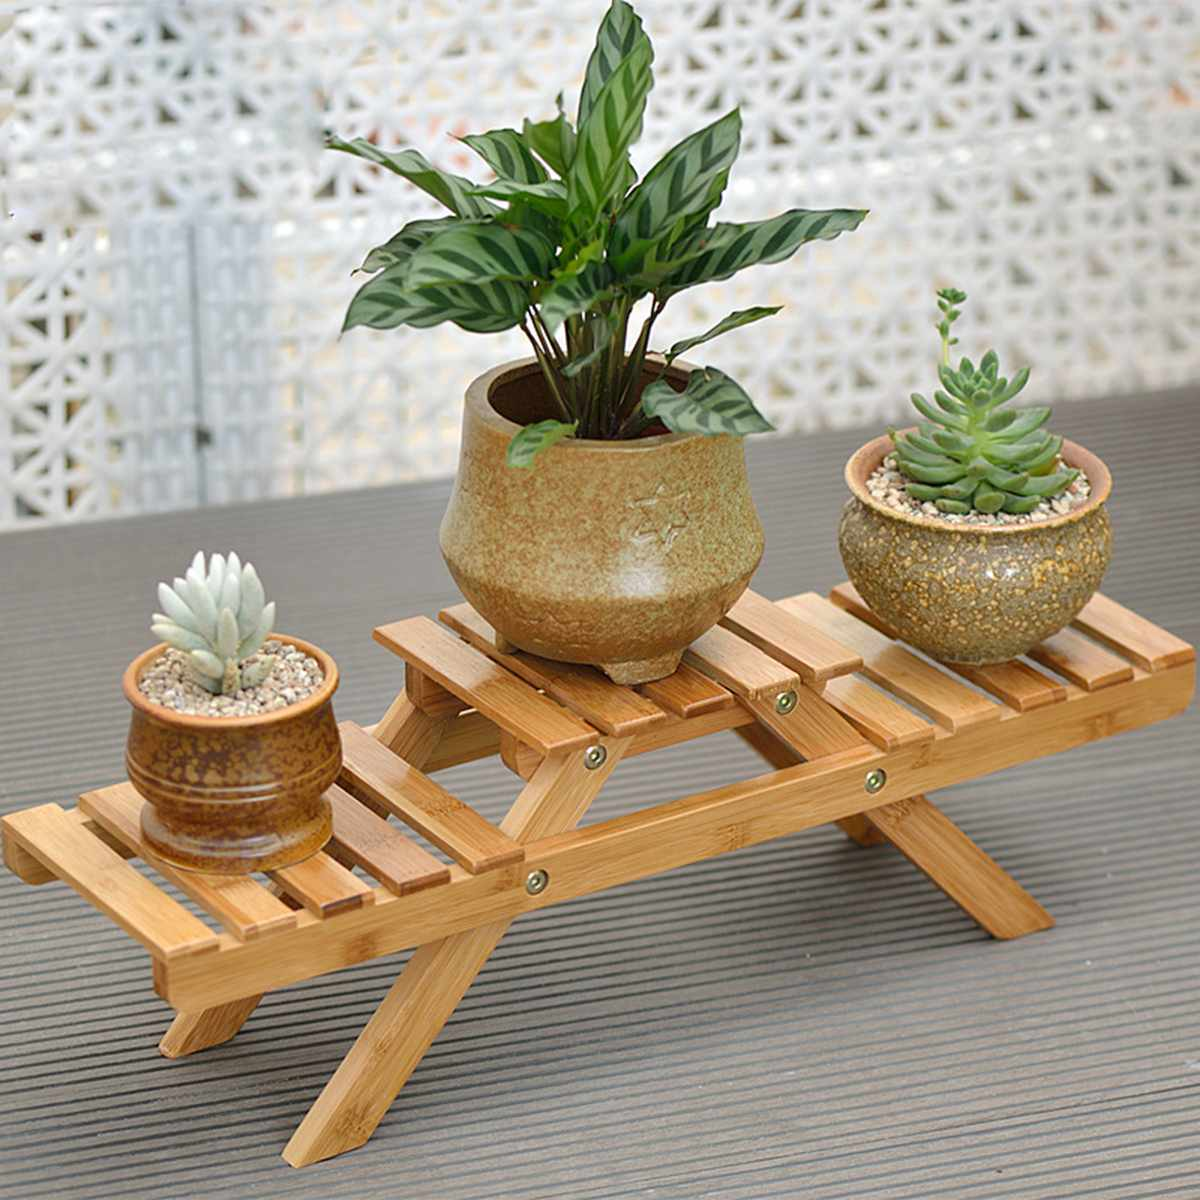 Plant Shelves Flower Garden Rack Stand Flower Display Stand Bamboo Display Stand